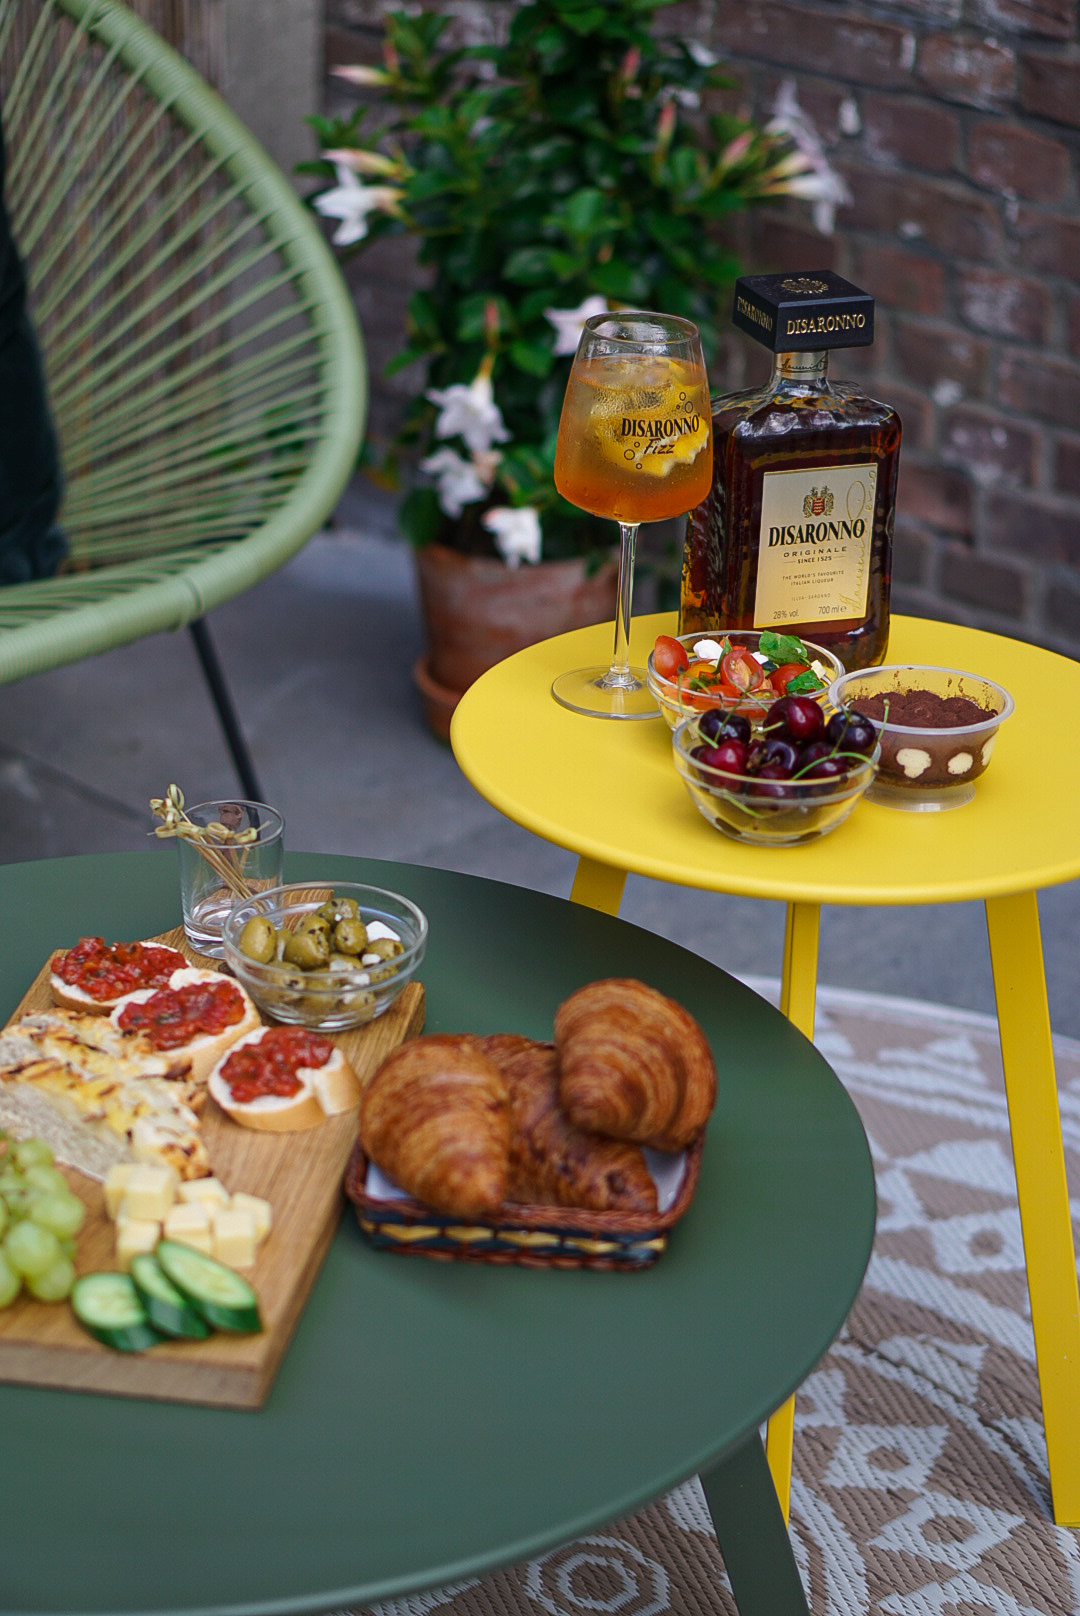 Pop up your brunch with Disaronno Fizz cocktail